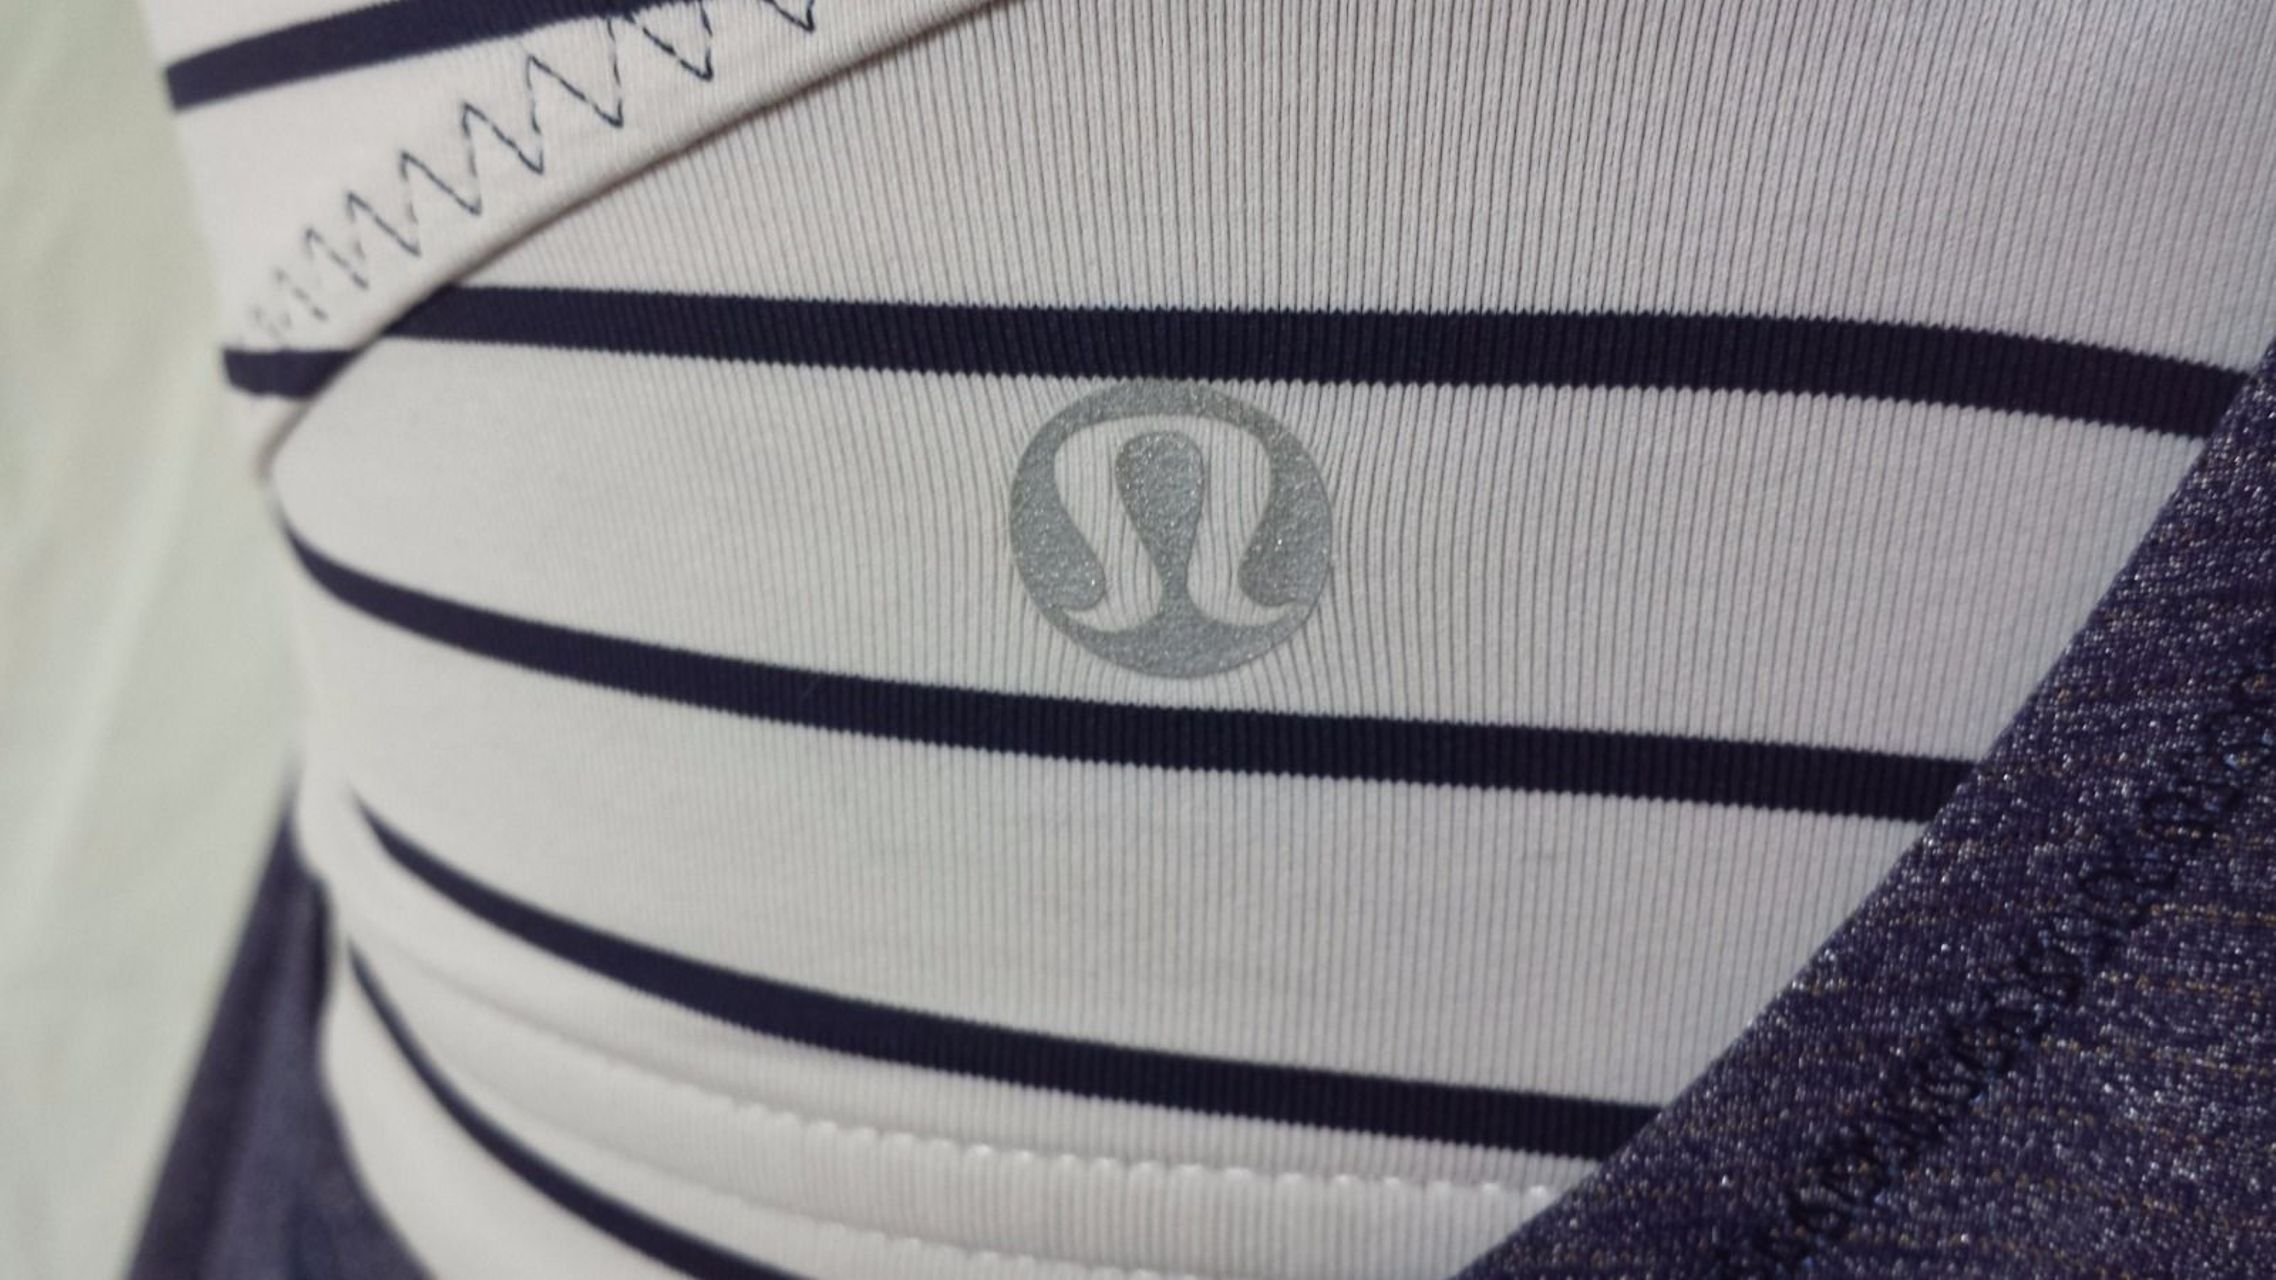 Lululemon Run:  Back On Track Tank - Deep Indigo /  Quiet Stripe White Deep Indigo /  Wide Bold Stripe White Deep Indigo